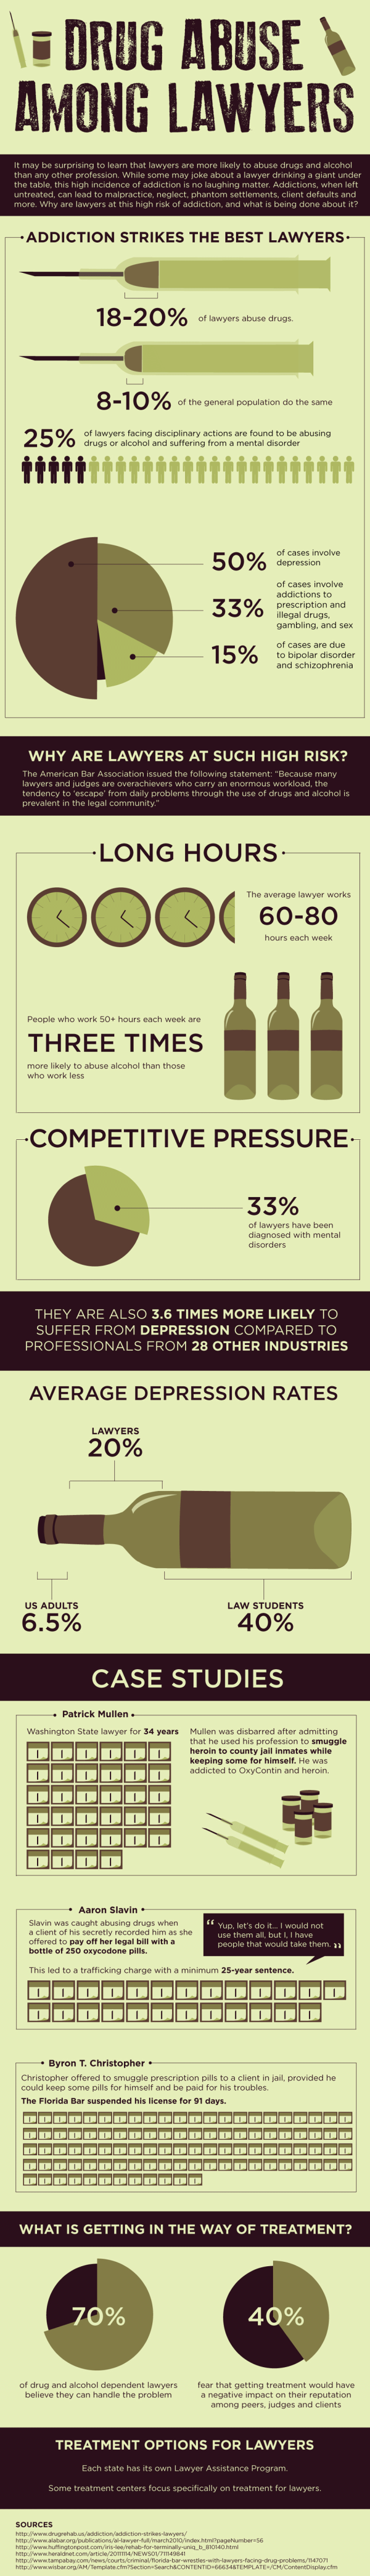 alcoholism and drug abuse by lawyers infographic consultants virginia edva